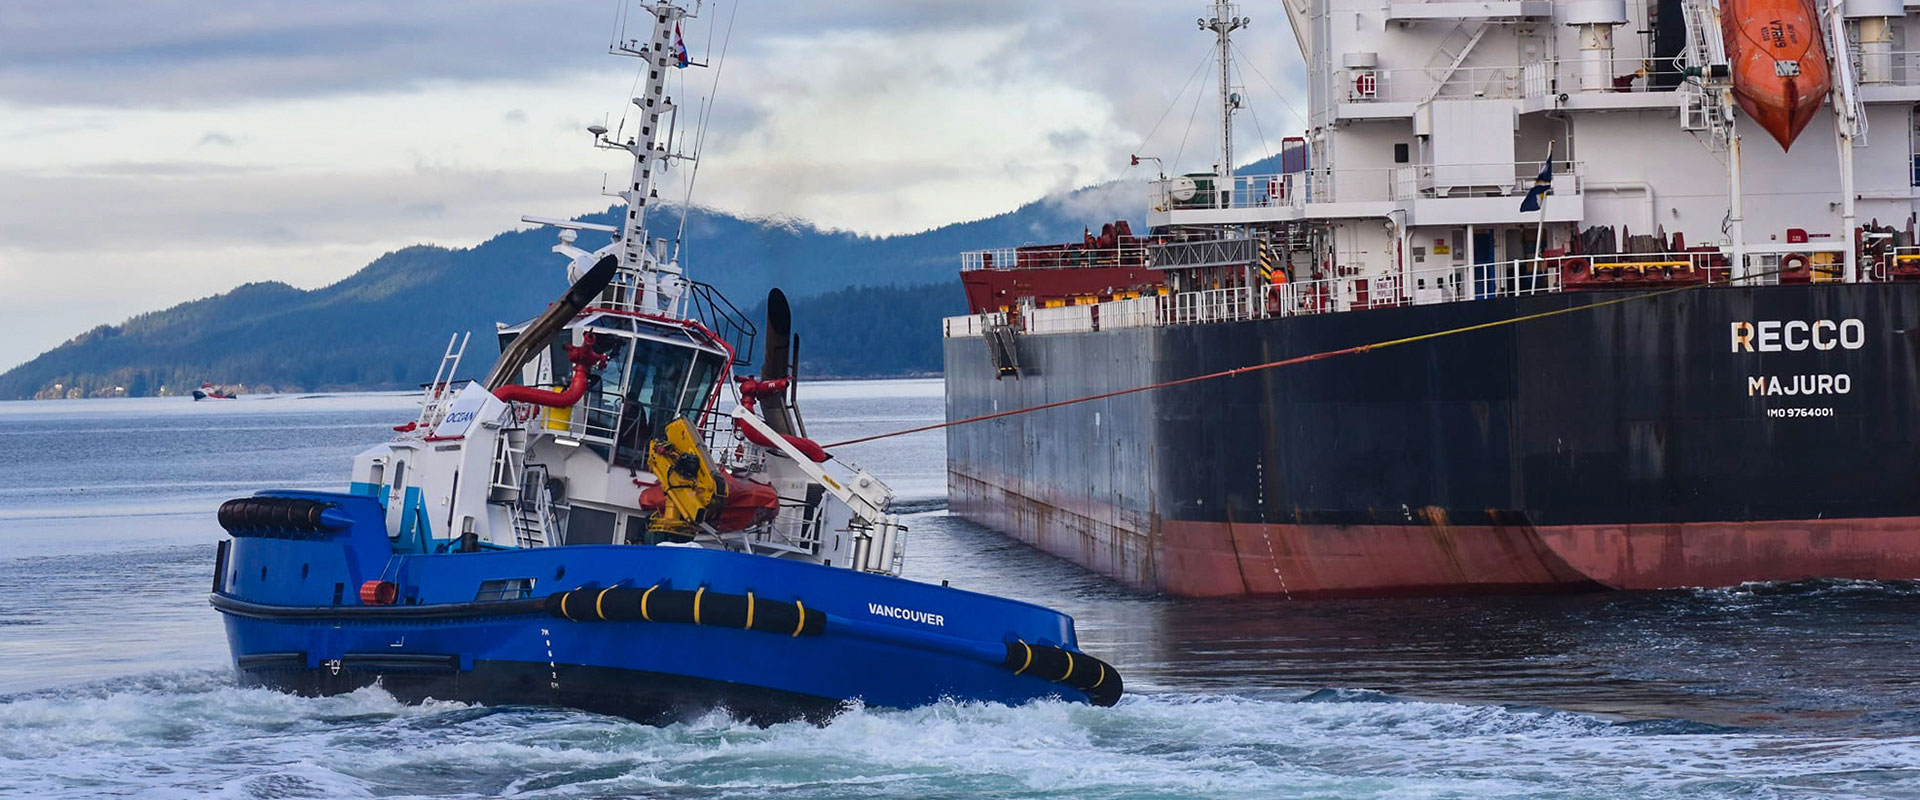 A FOURTH TUG IN VANCOUVER HARBOUR